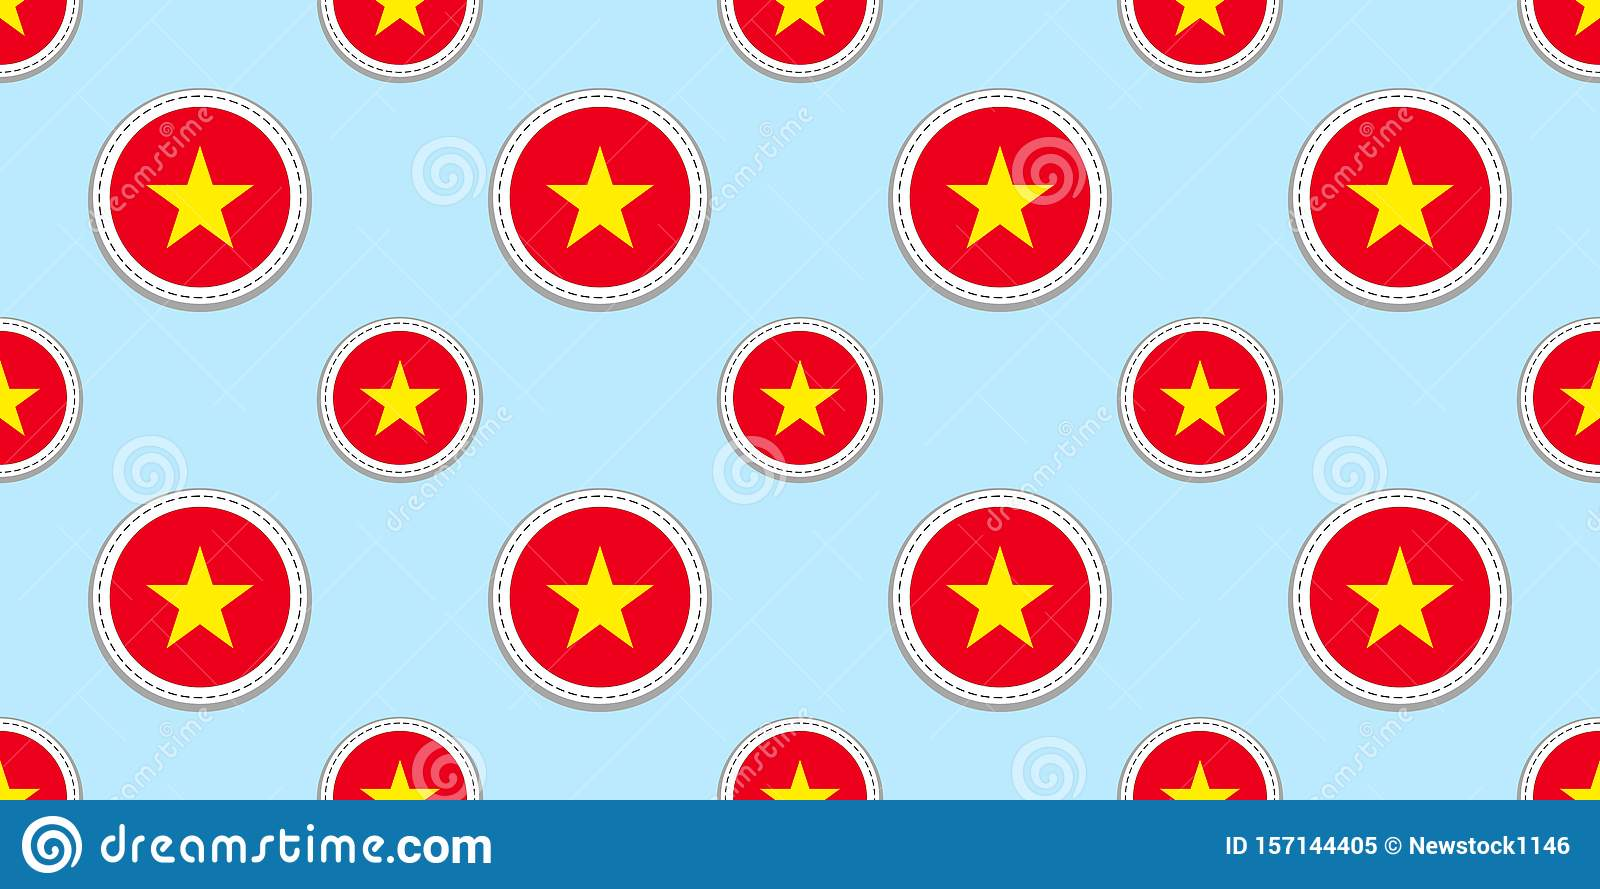 Vietnam Round Flag Seamless Pattern Vietnamese Background Vector Circle Icons Geometric Symbols Stickers Texture For Stock Vector Illustration Of State Sport 157144405